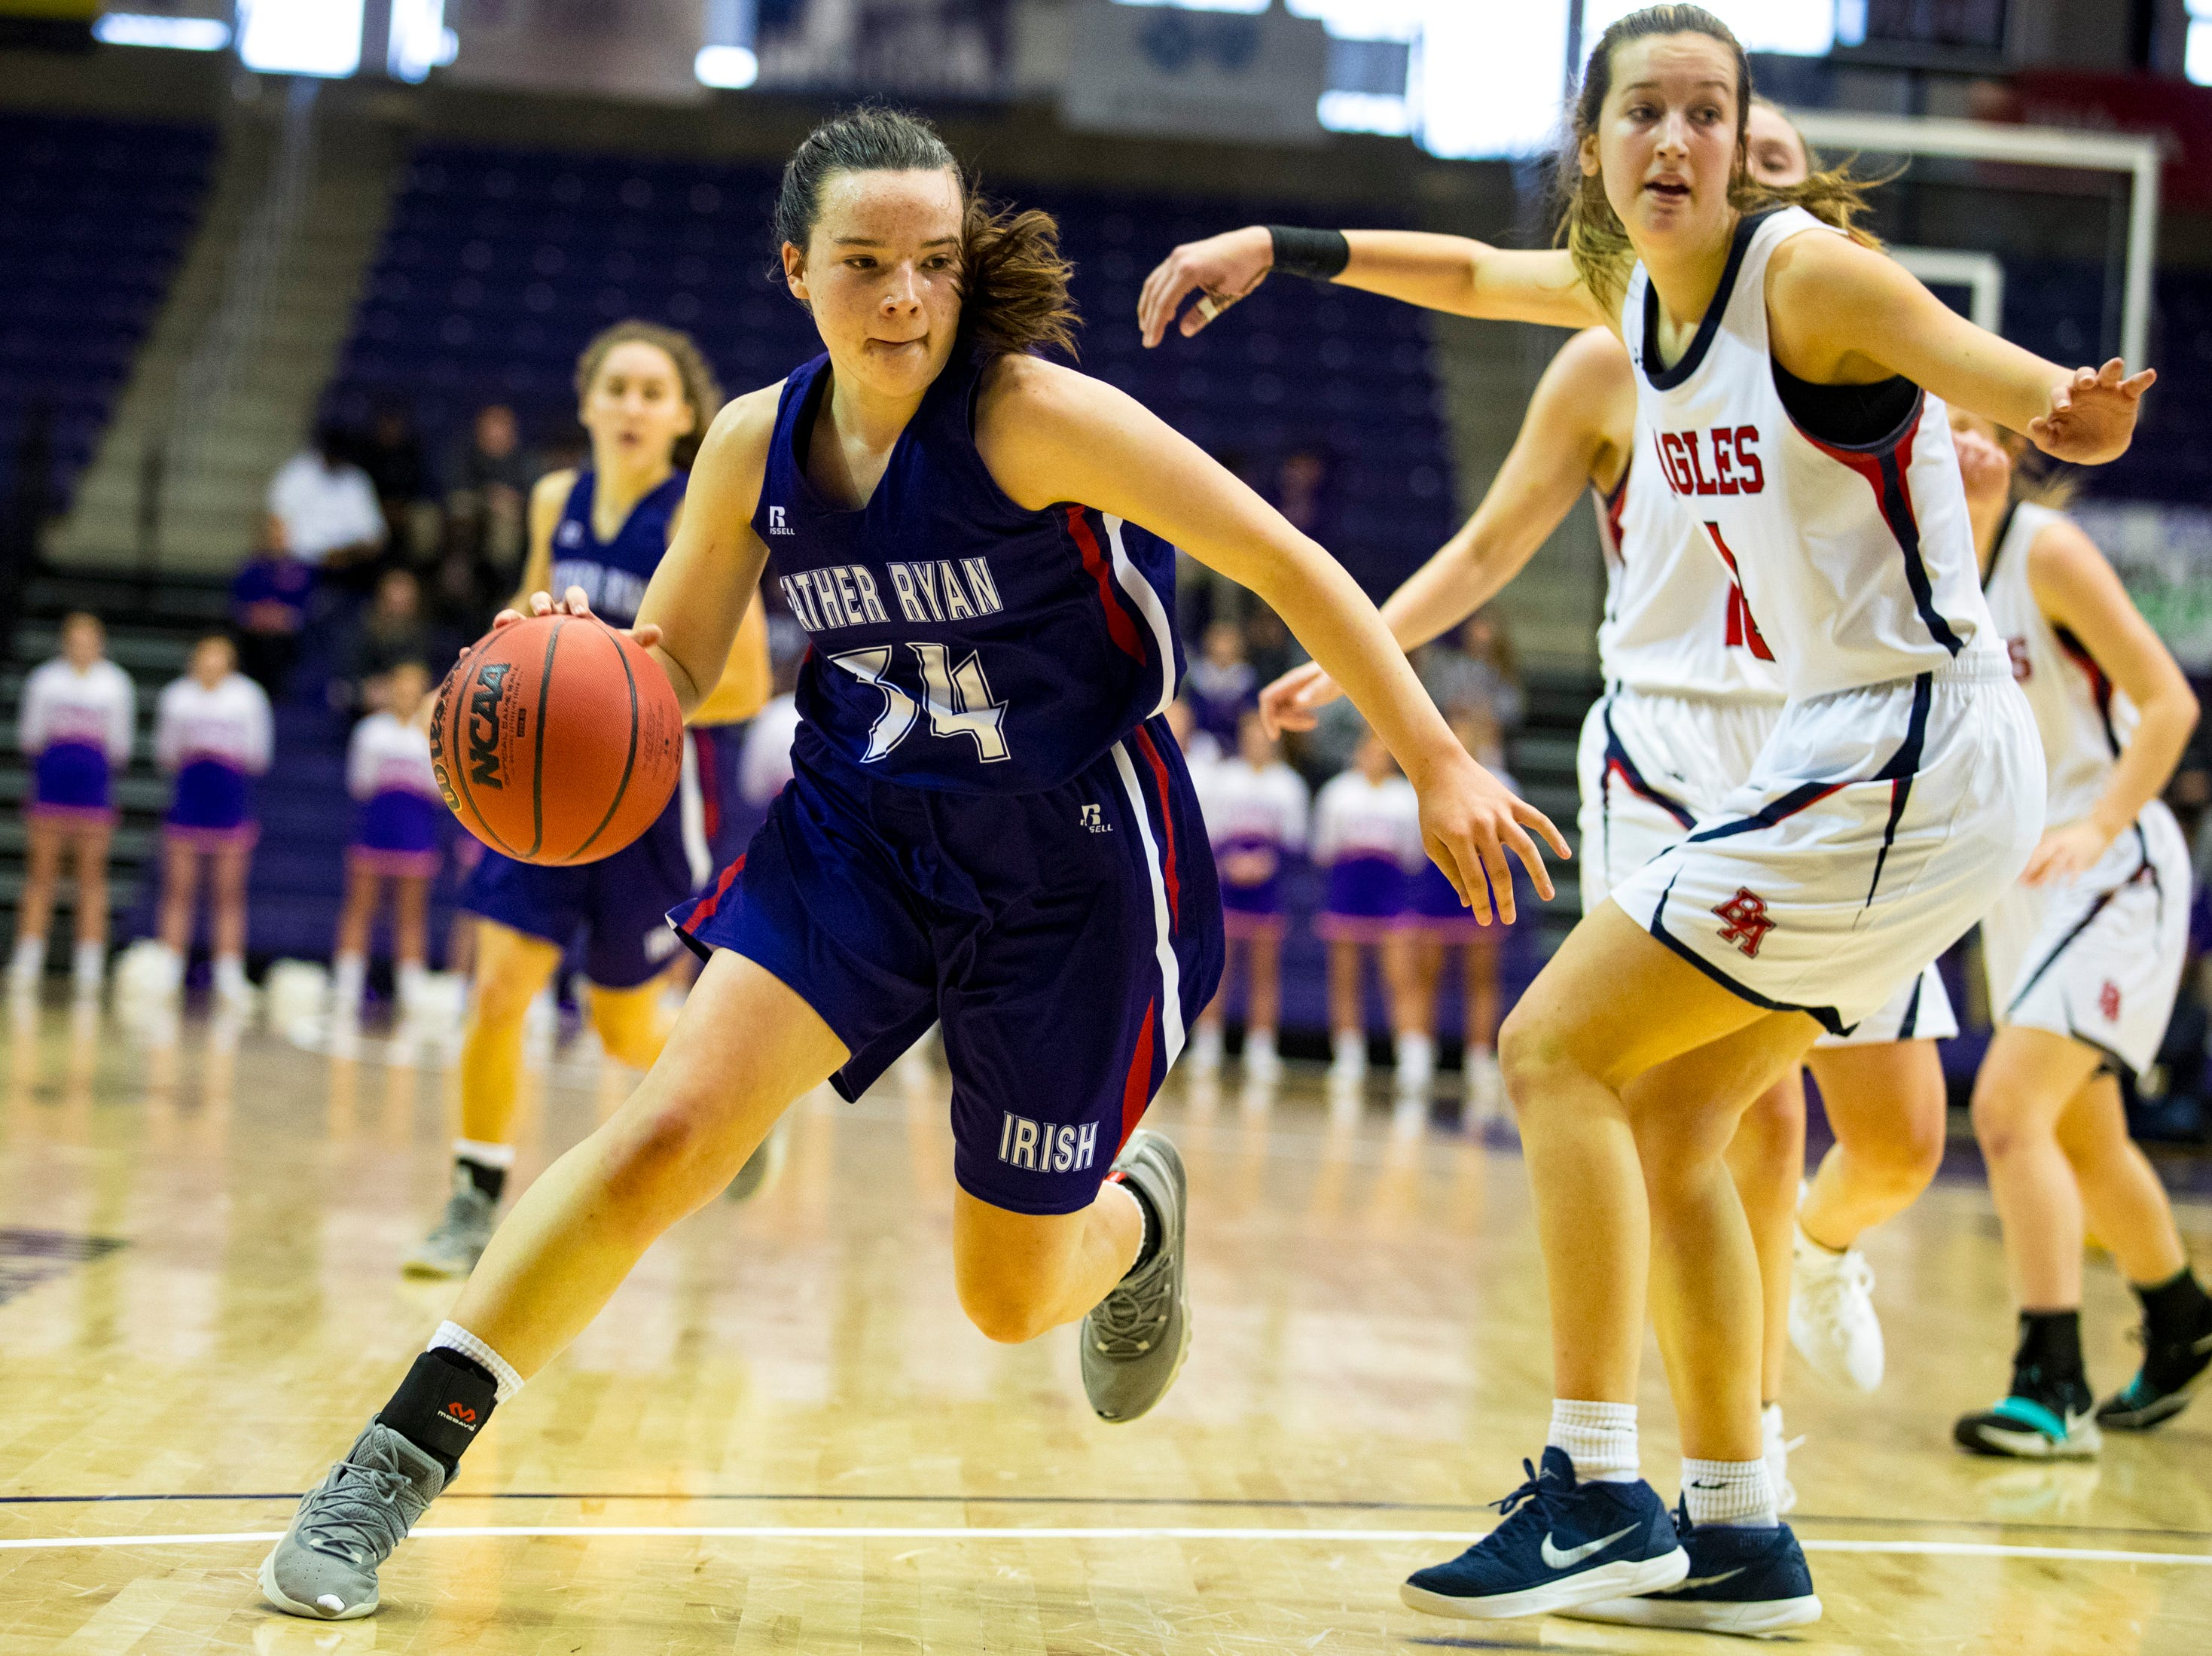 Father Ryan's Mary Mackie (34) moves the ball down court during Brentwood Academy's game against Father Ryan in the semifinal round of the TSSAA Division II Class AA State Championships at Lipscomb University's Allen Arena in Nashville on Thursday, Feb. 28, 2019.